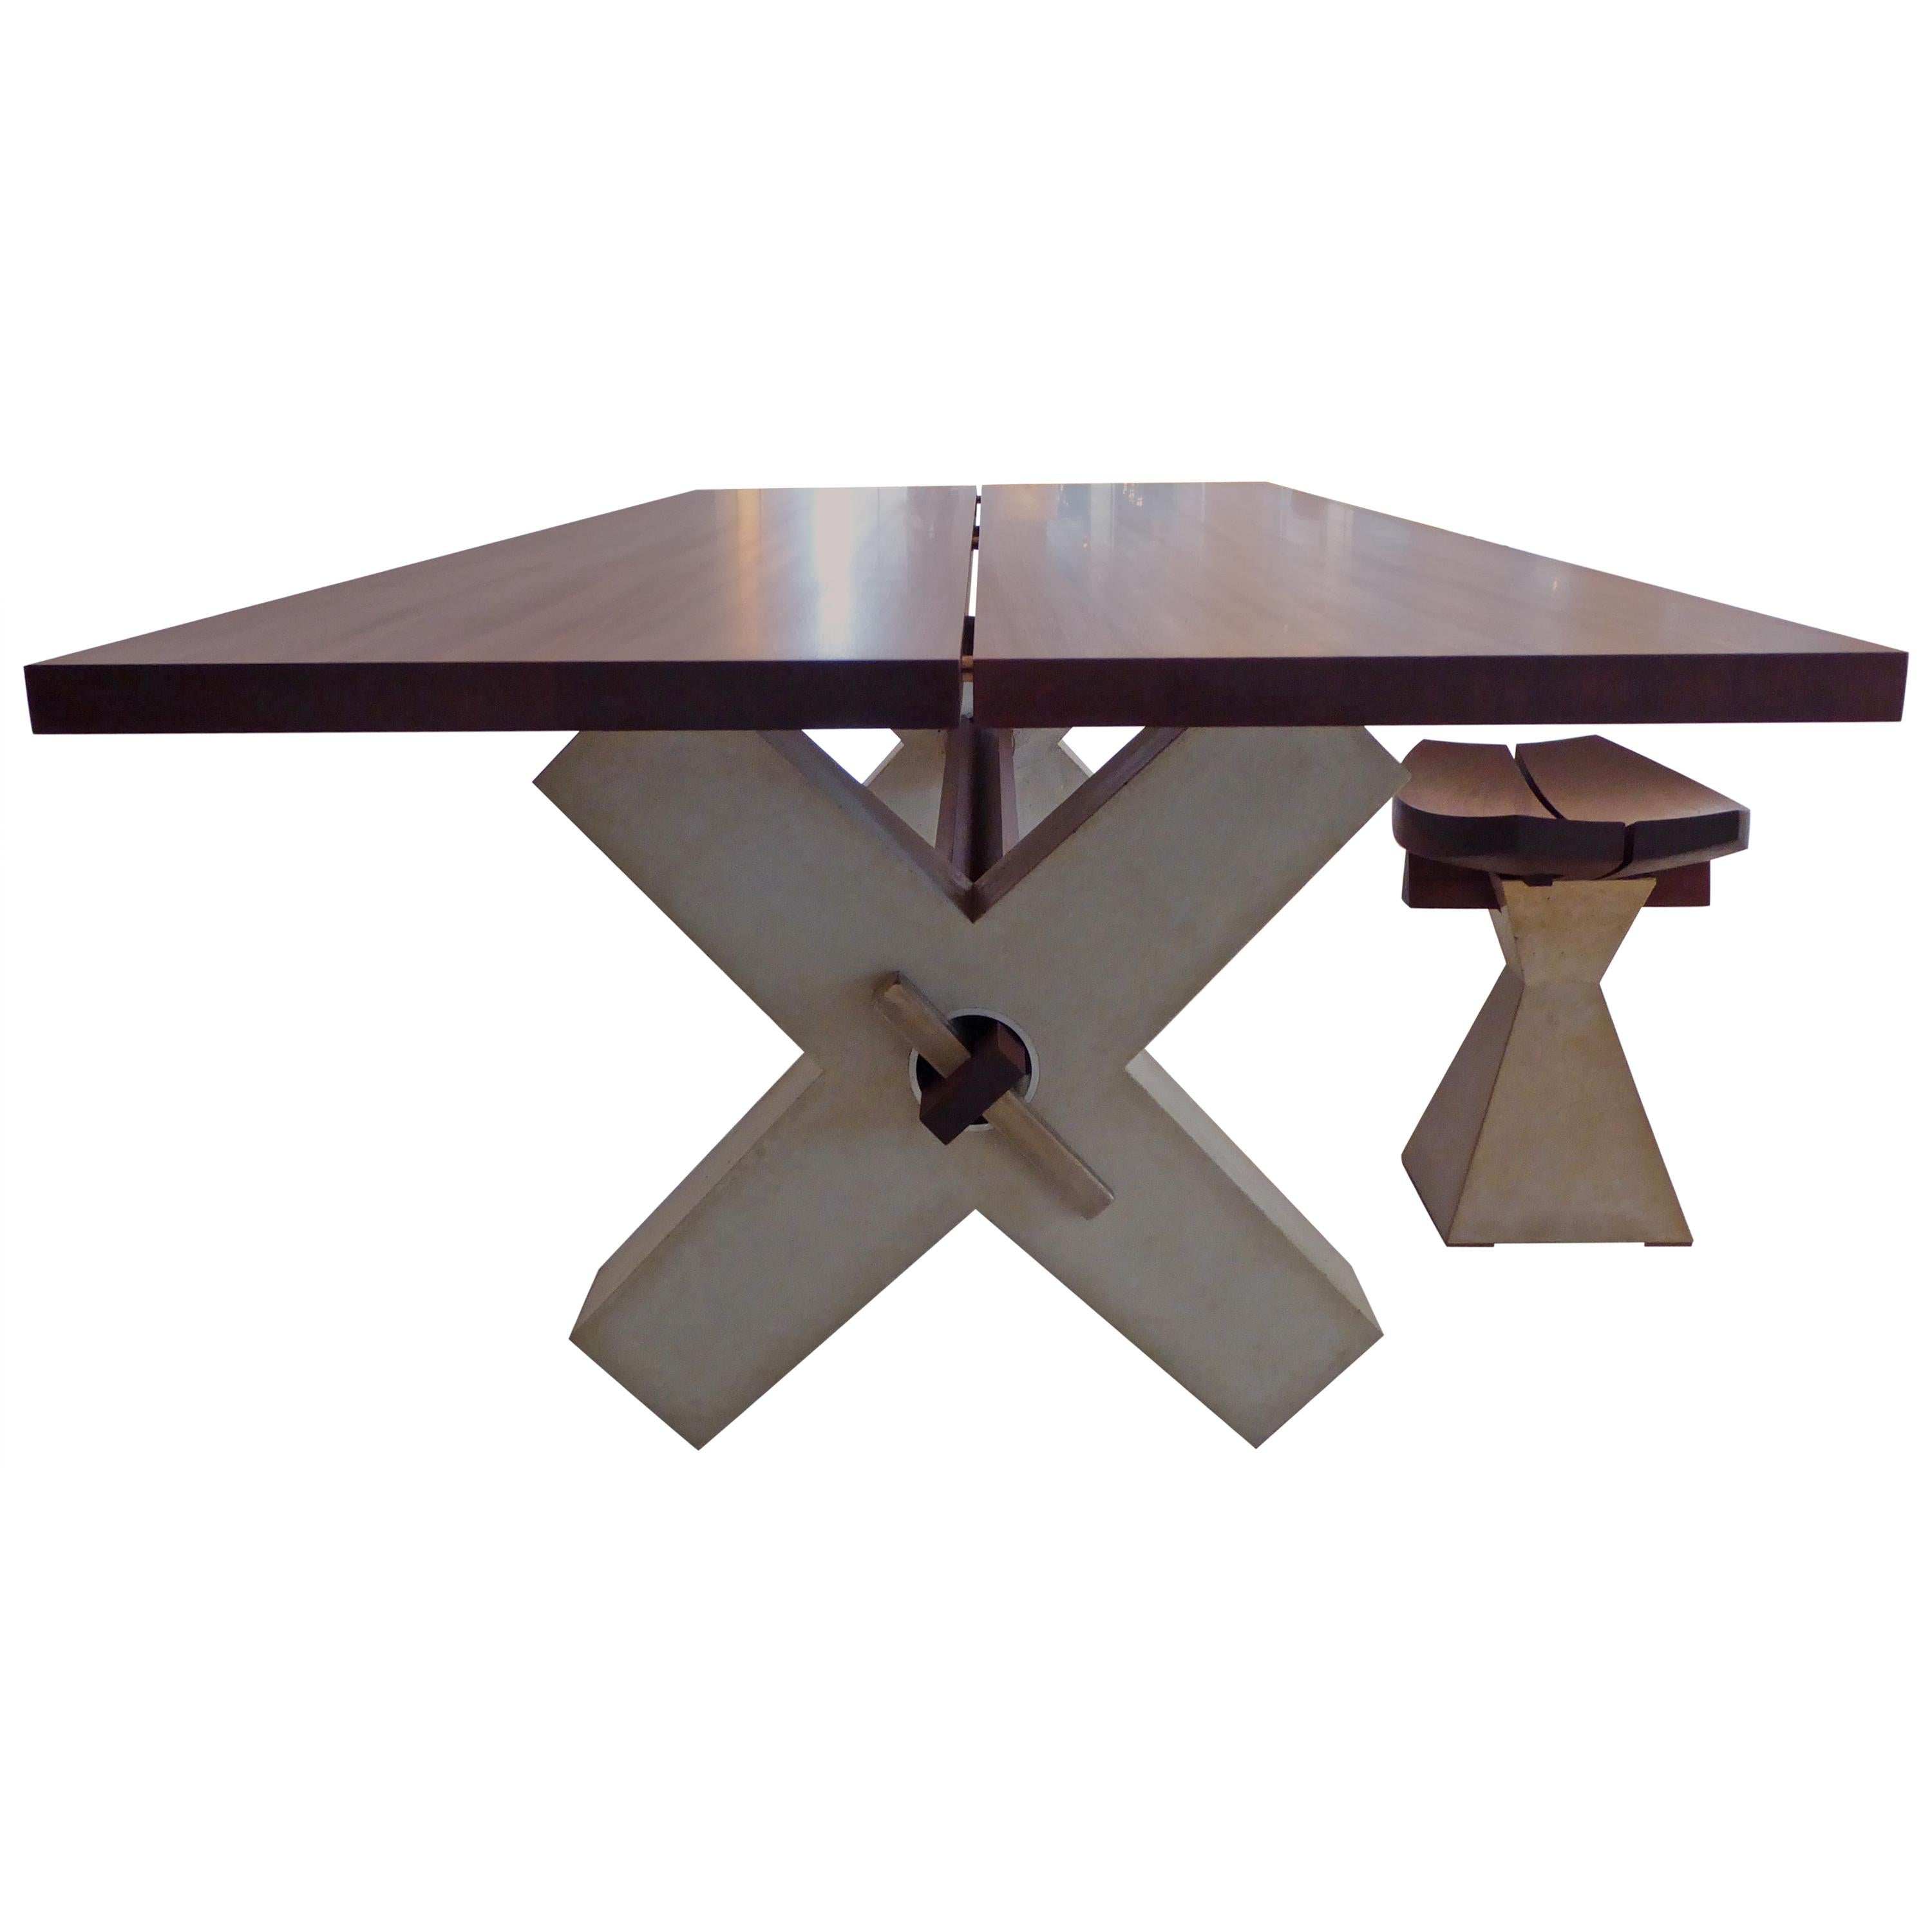 Solid Wood Dining Table with Concrete Base, Modern